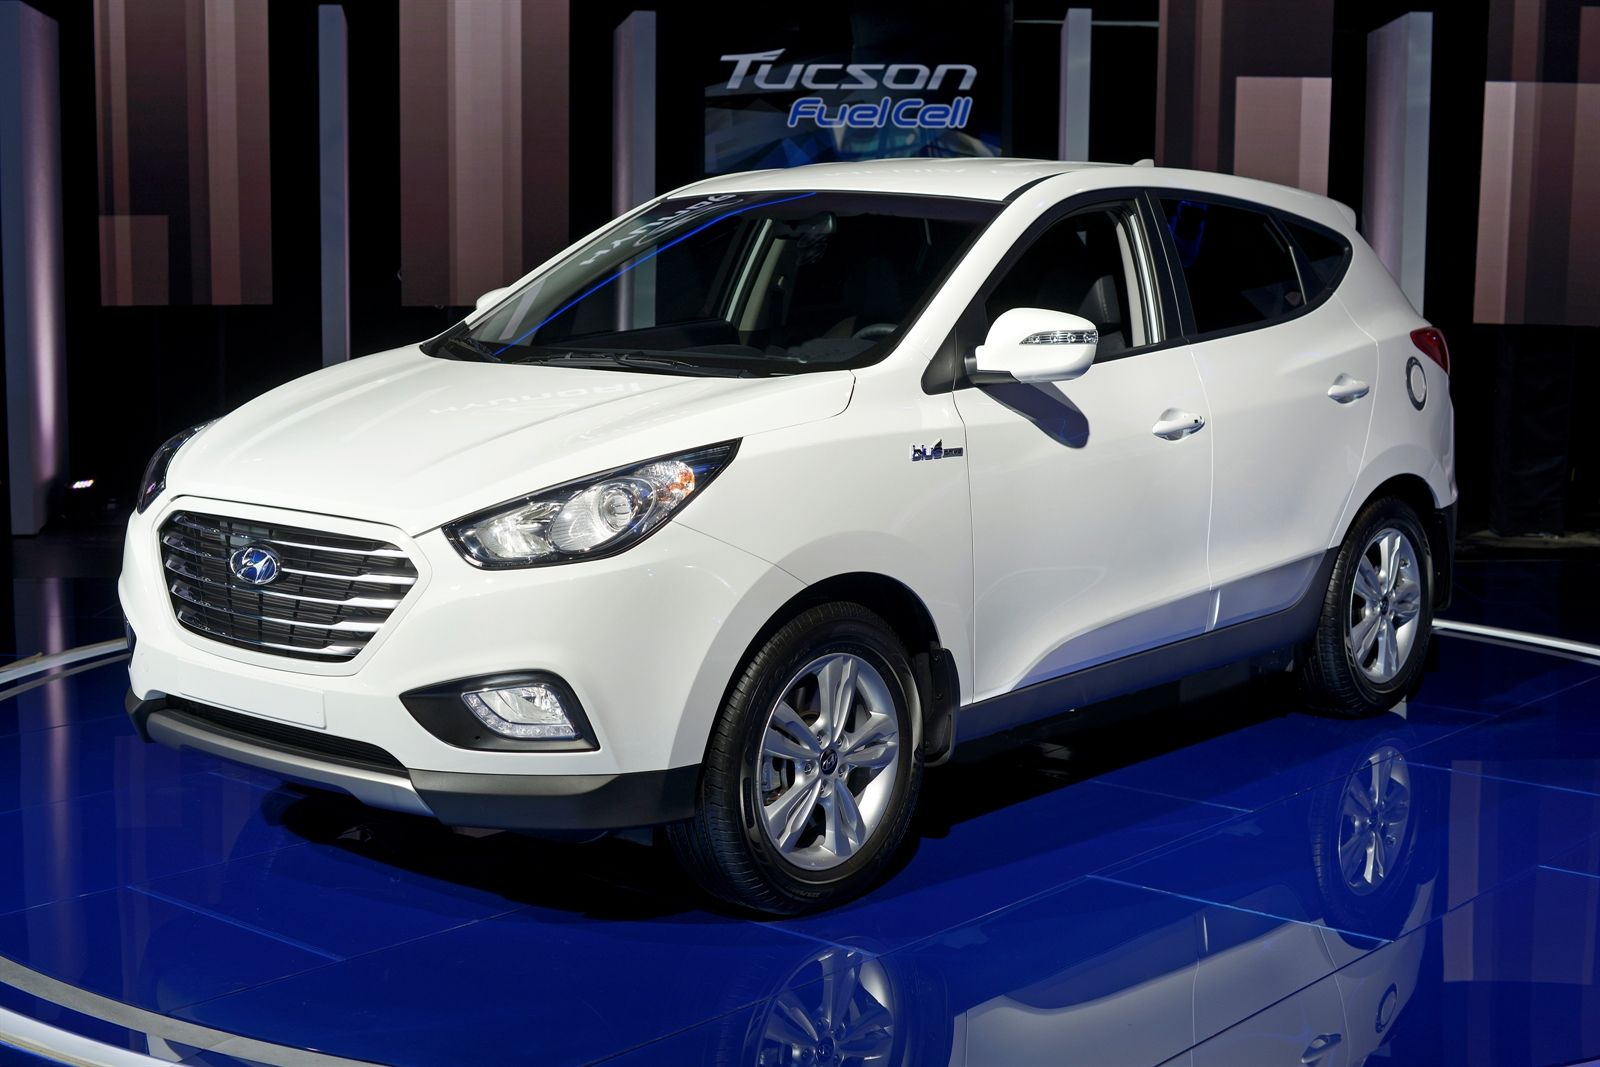 New 2015 Hyundai Tuscon Fuel Cell Preview: 2013 Los Angeles Auto Show